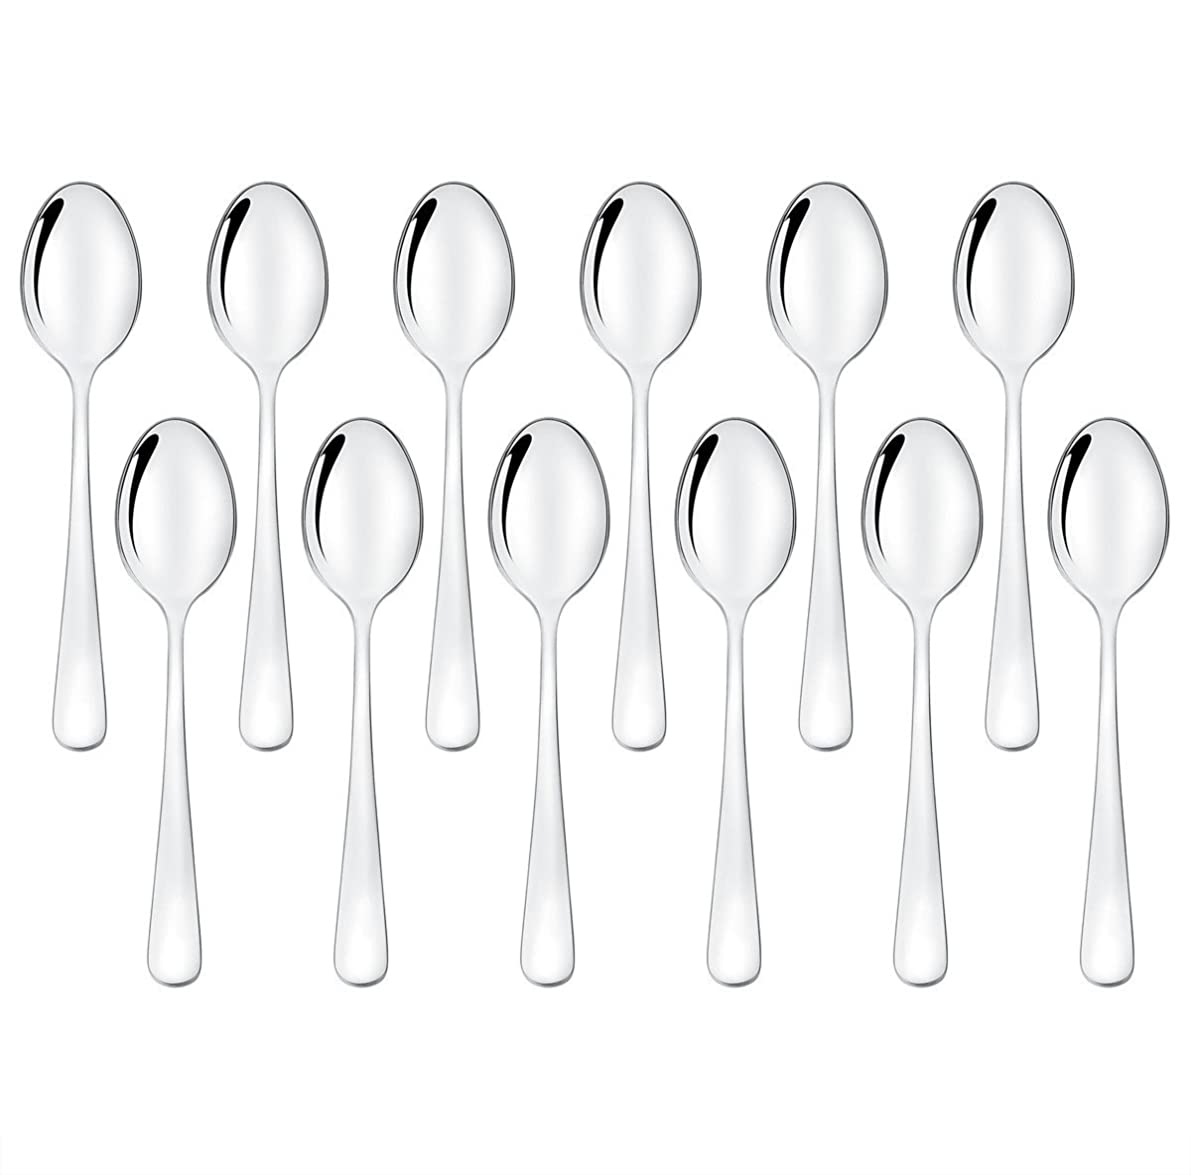 Demitasse Spoons Set of 12, Mini Coffee Spoons, LEYOSOV Stainless Steel Espresso Spoons, Small Spoons for Dessert, Tea, Appetizer, 4 inch